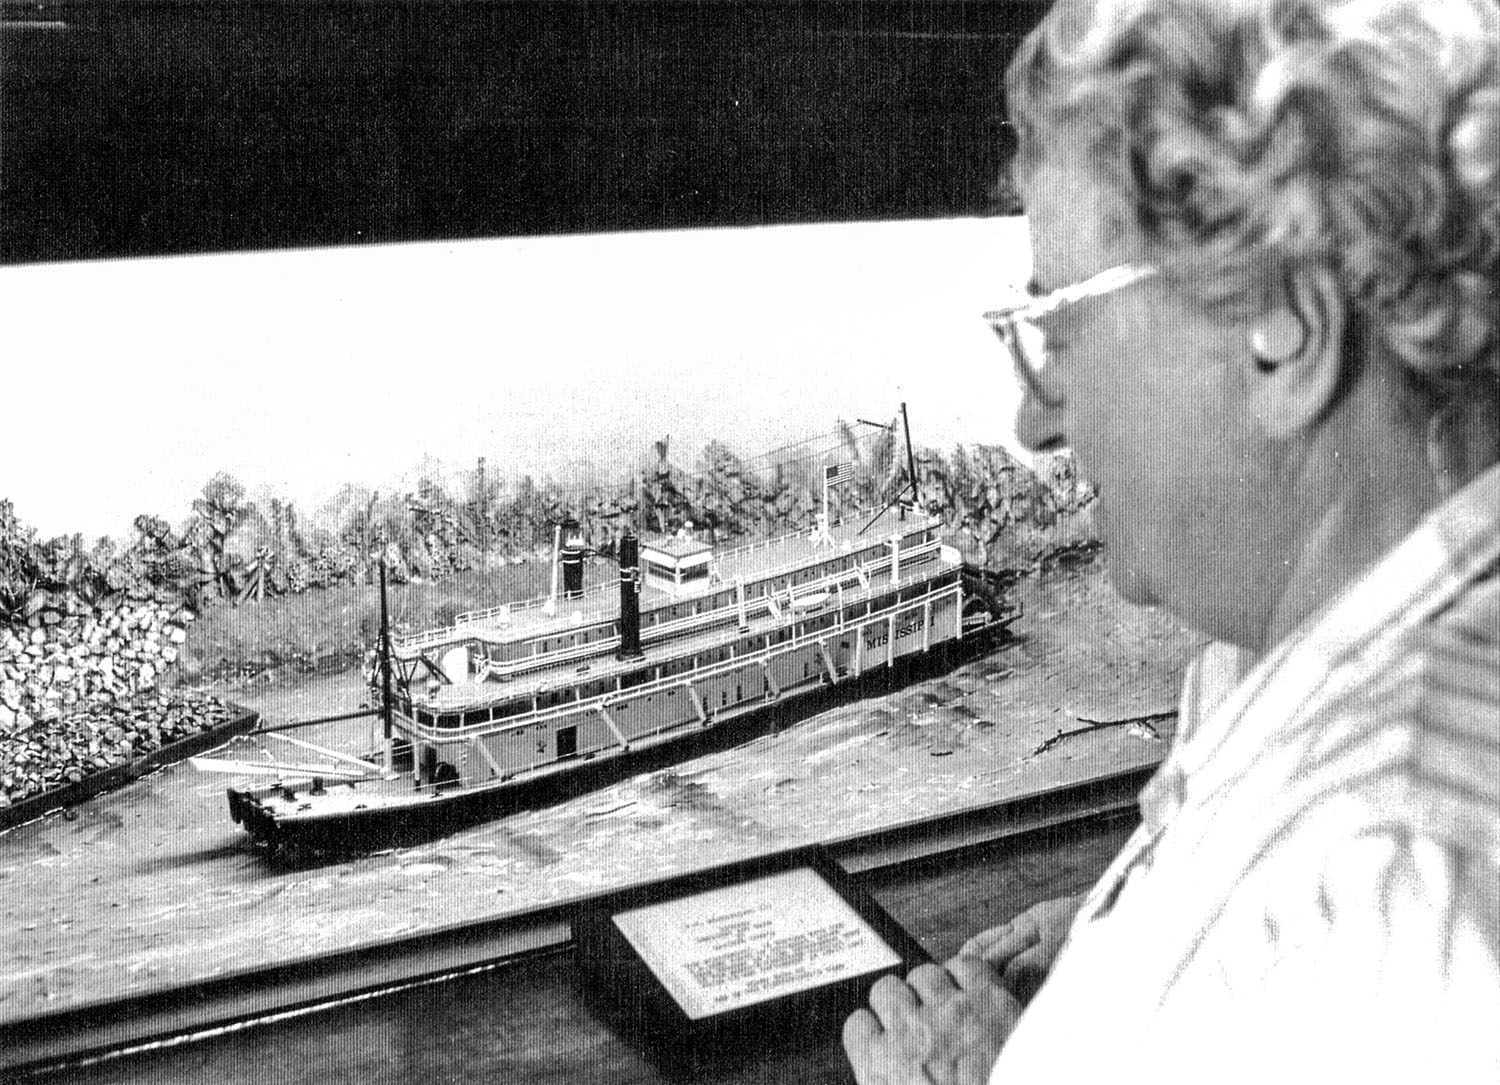 Midship Museum curator Ruth Ferris looks at a model (built by a crew member) of the Str. Mississippi III. (Keith Norrington collection)